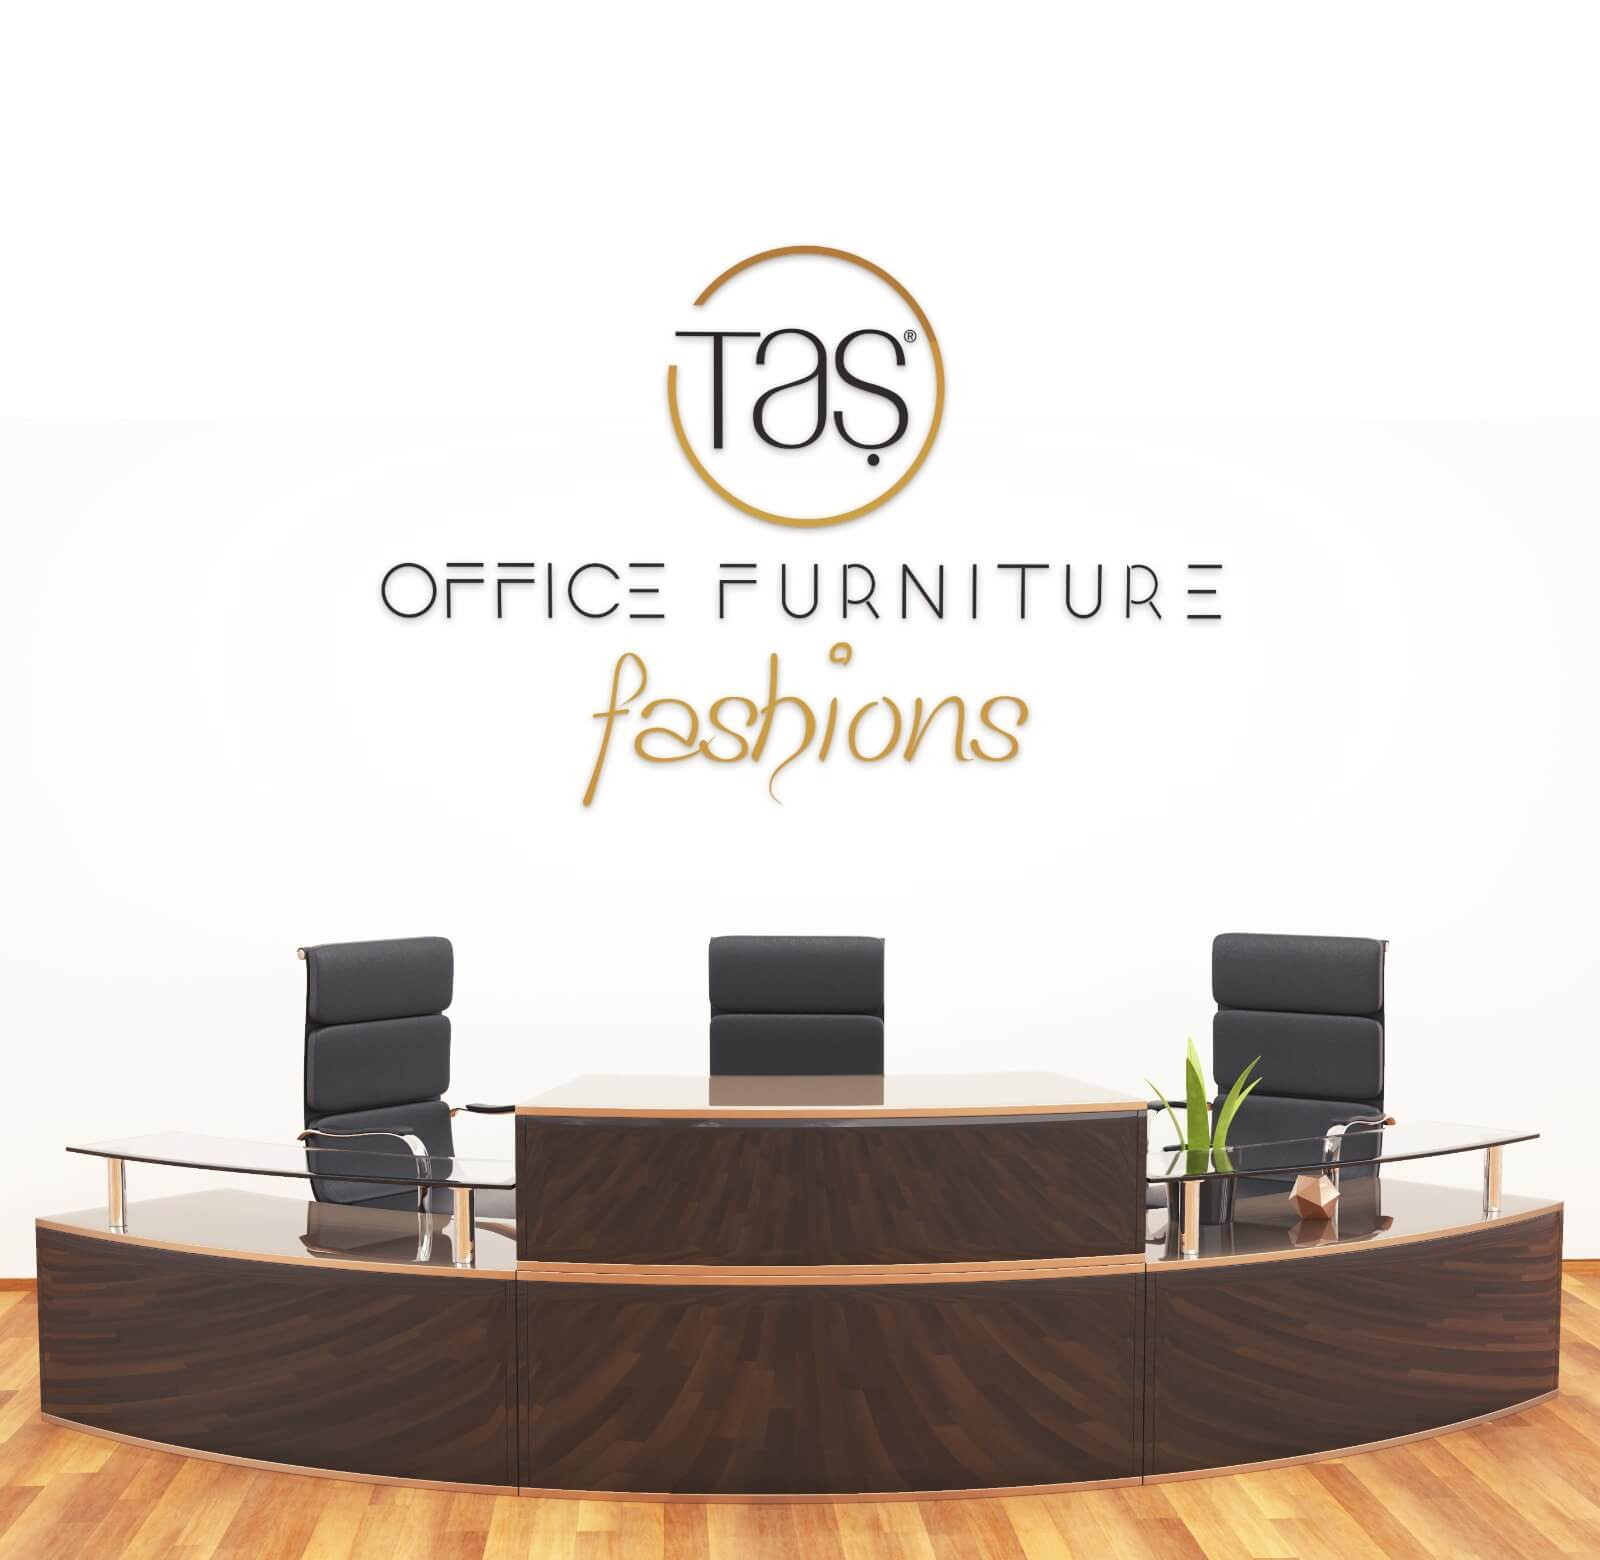 Taş Office Furniture Magaza